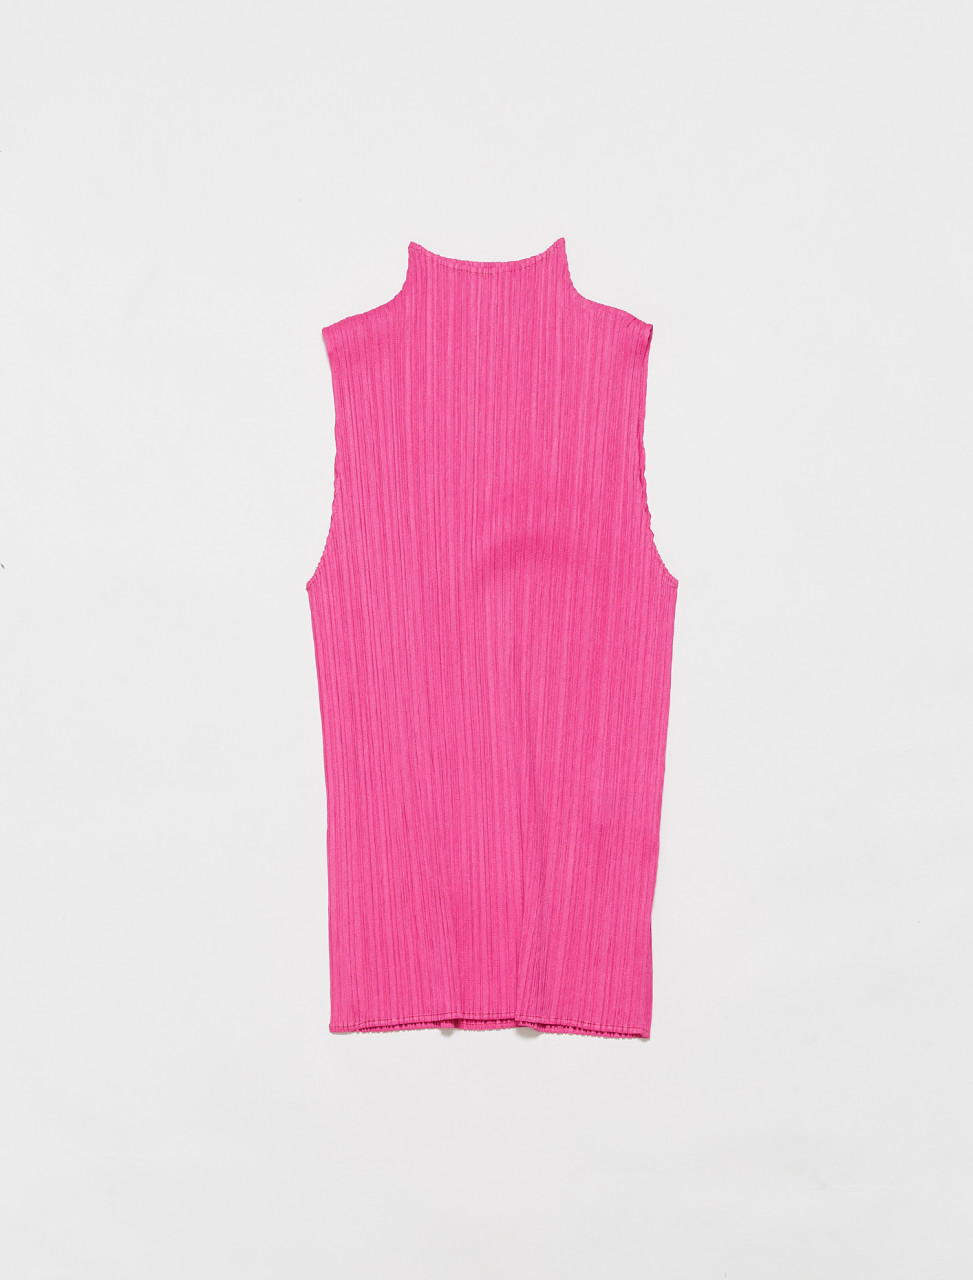 PP16JK902-22 PLEATS PLEASE ISSEY MIYAKE HIGH NECK SLEEVELESS TOP PINK